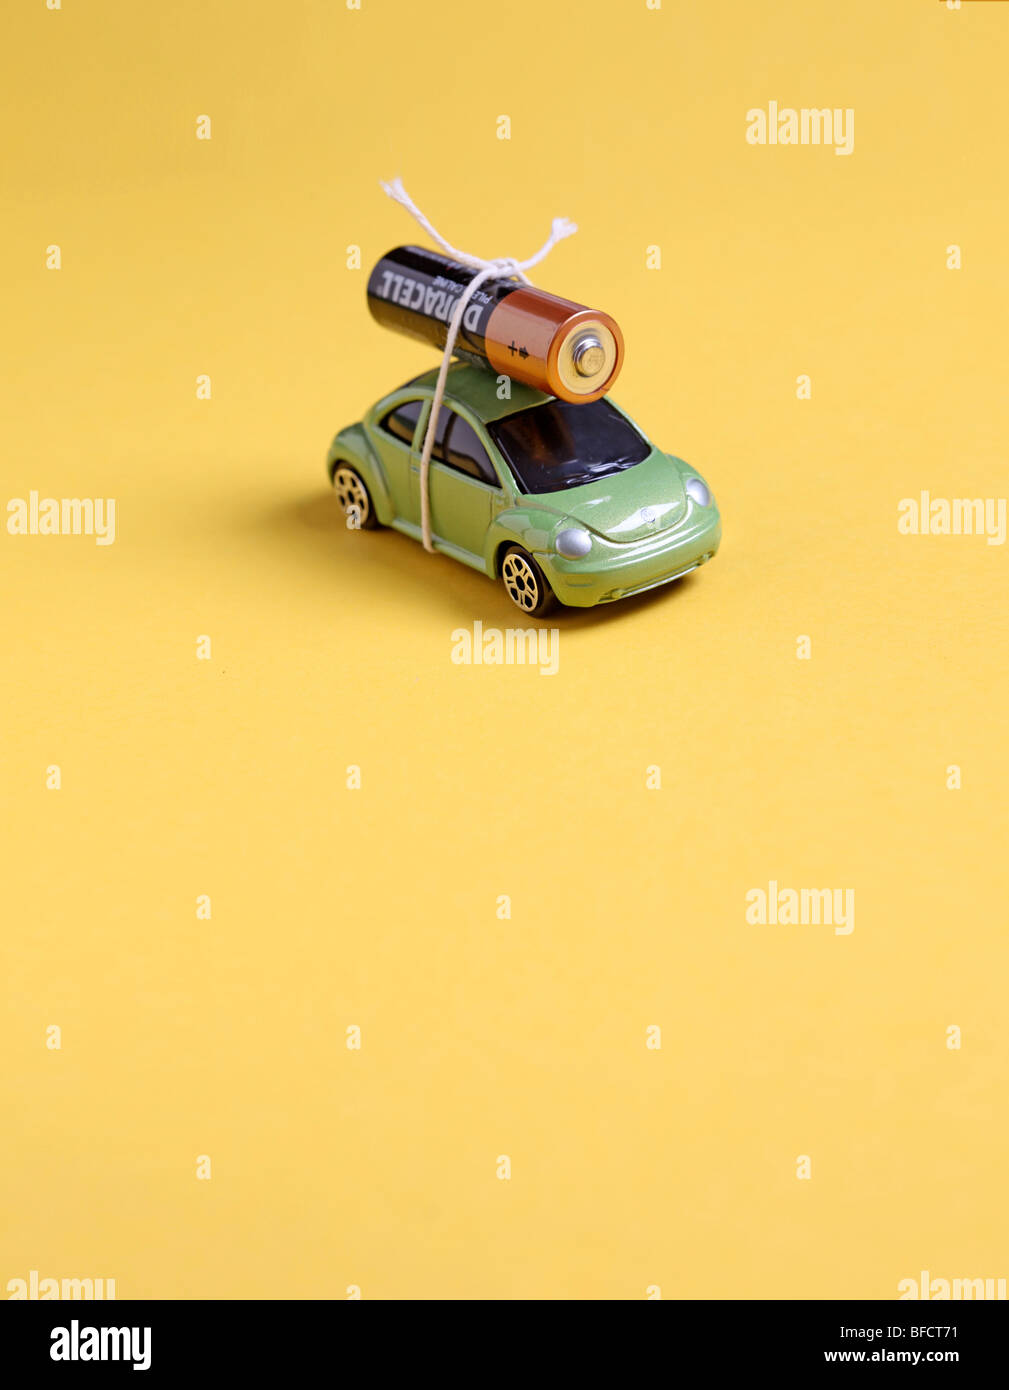 Toy car with battery tied to top with string to illustrate battery powered car and alternative green energy use. - Stock Image